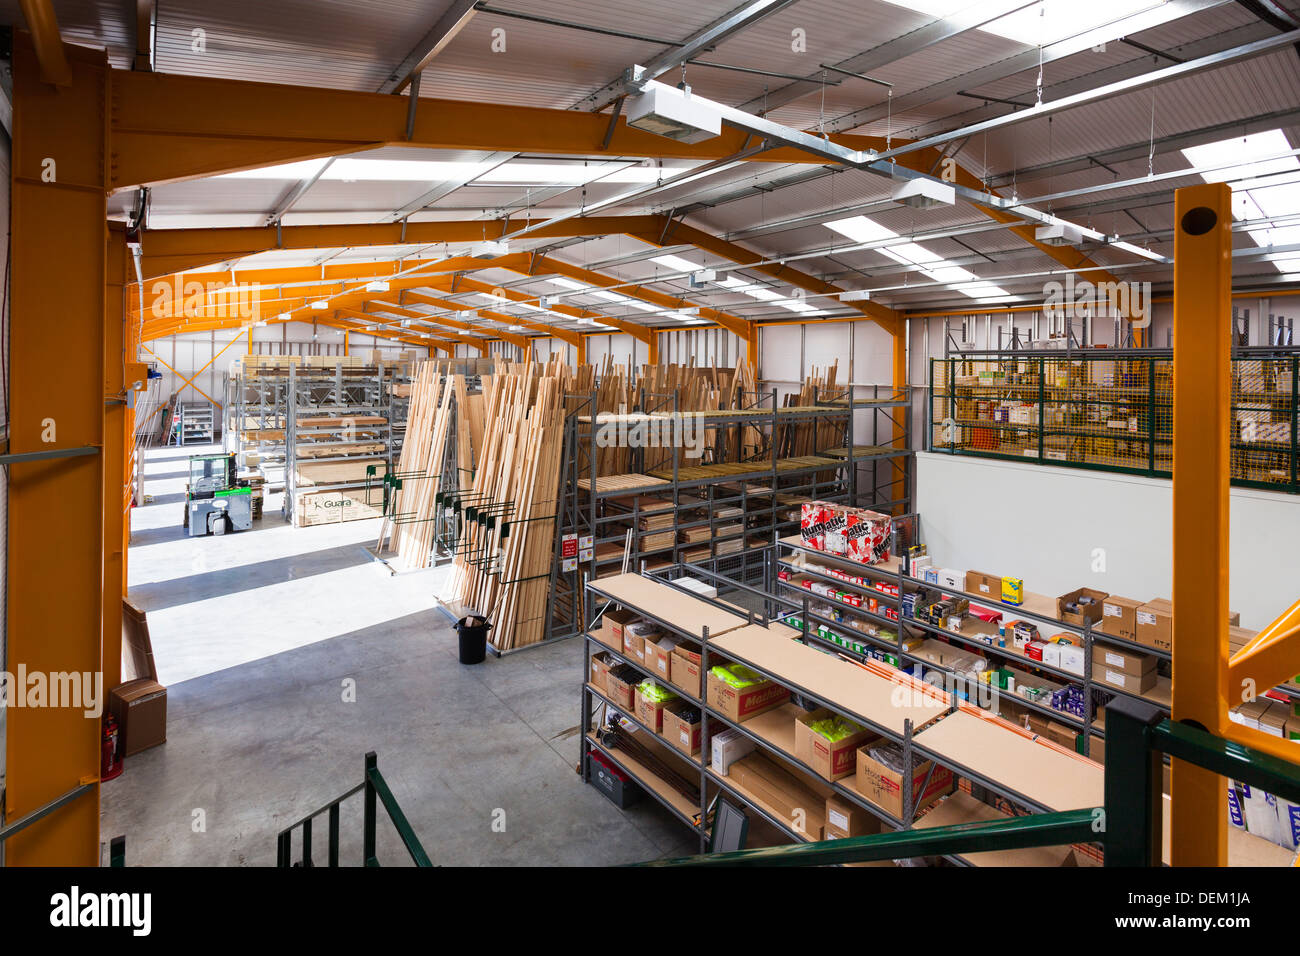 Warehouse interior of Travis Perkins builders merchants. - Stock Image